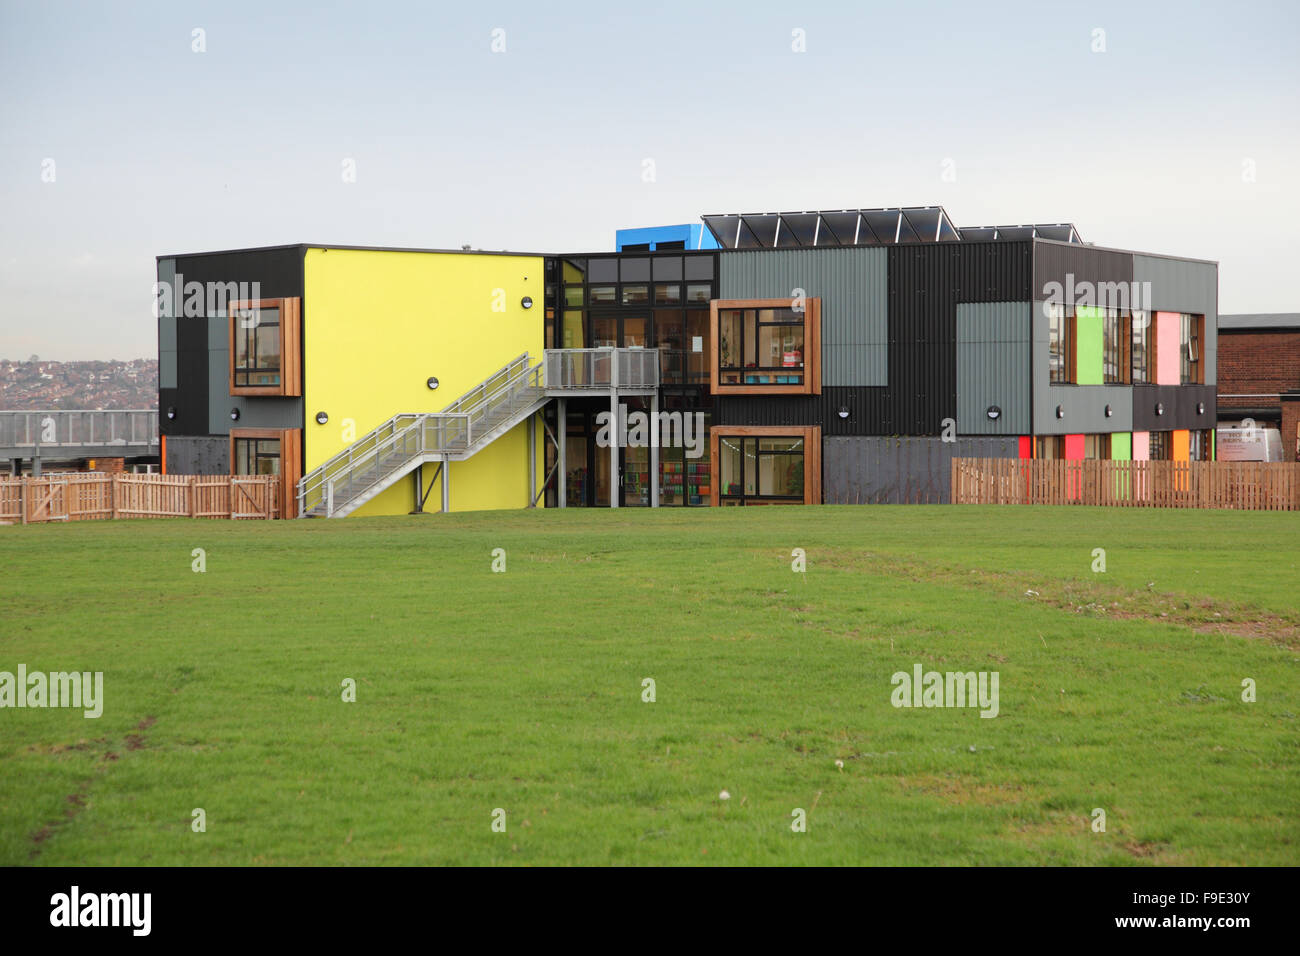 Robin Hood Primary School in Nottingham, UK. A modern, architecturally striking building featuring coloured wall - Stock Image